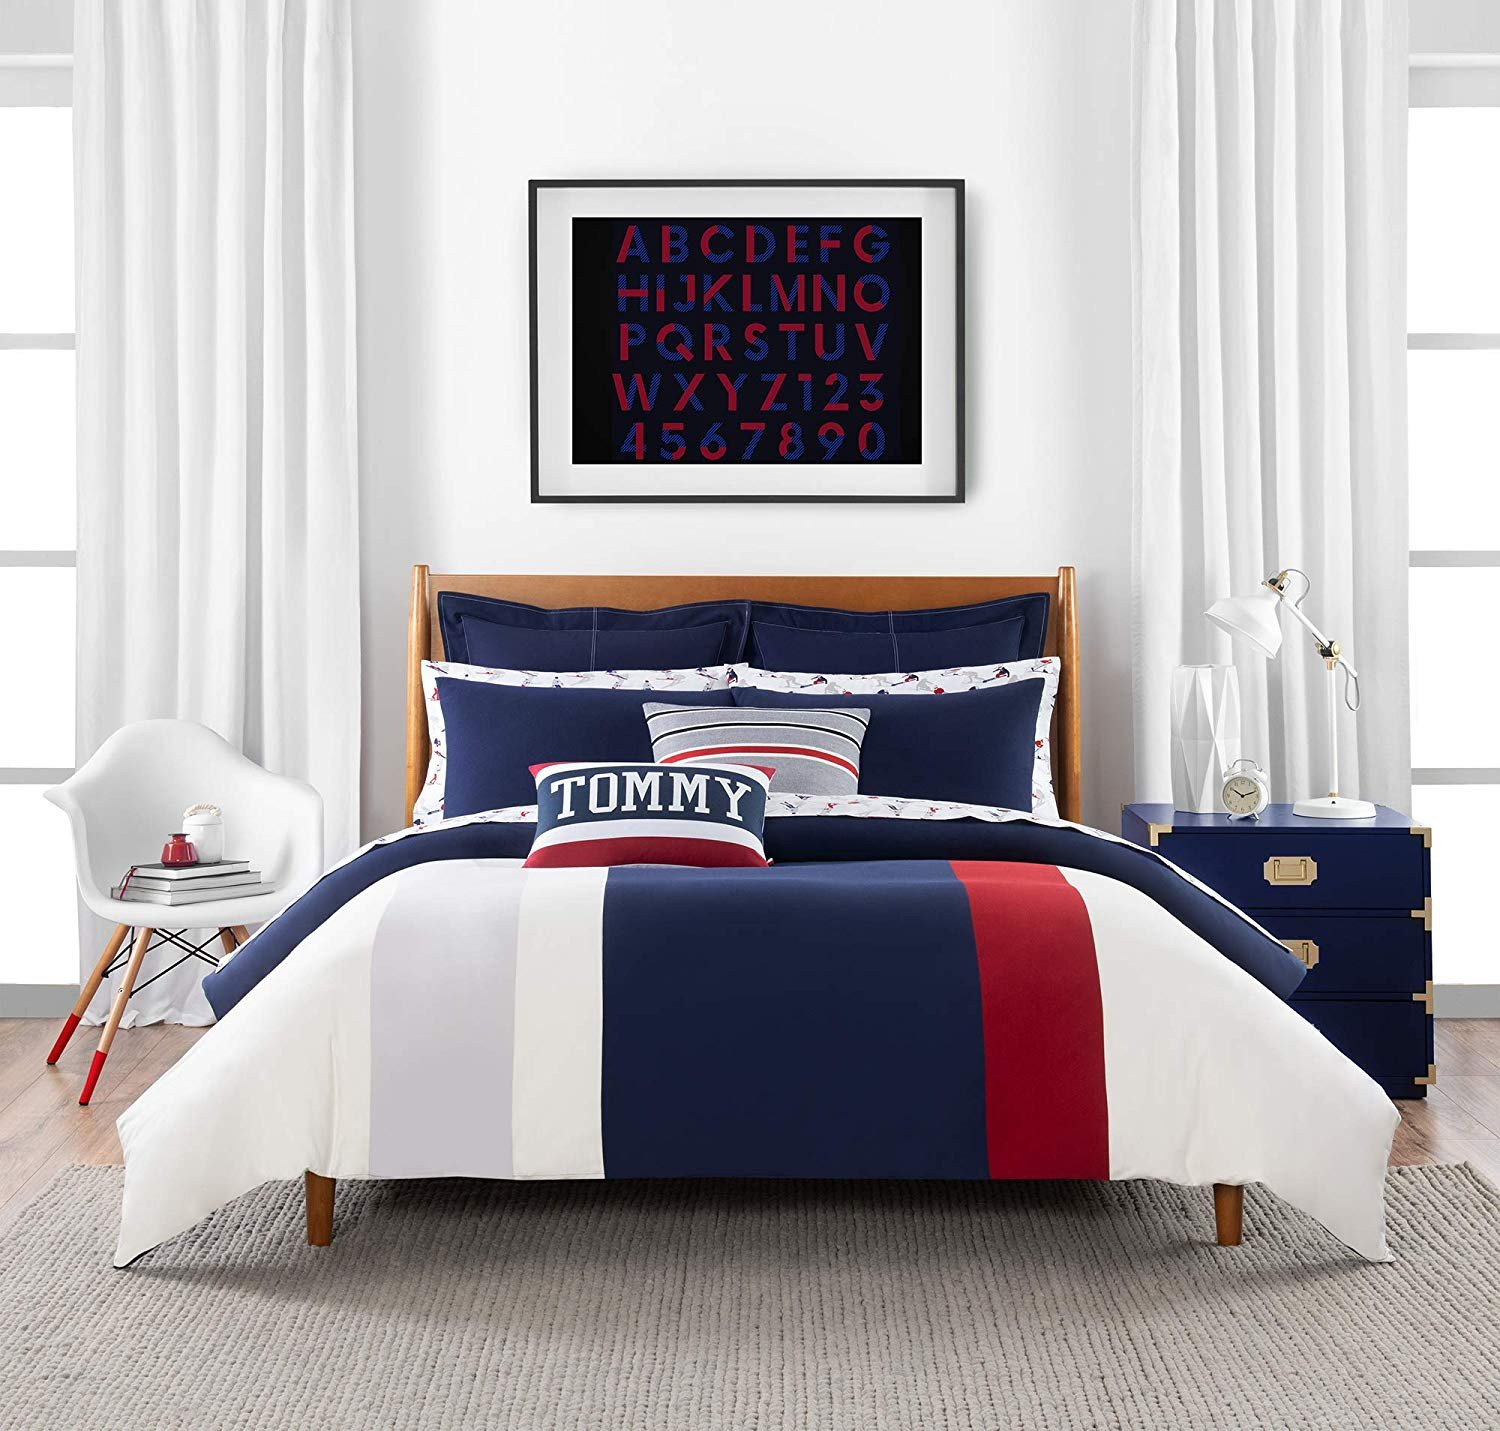 Red and Blue Bedroom Lovely Amazon tommy Hilfiger Clash Of 85 Stripe Bedding